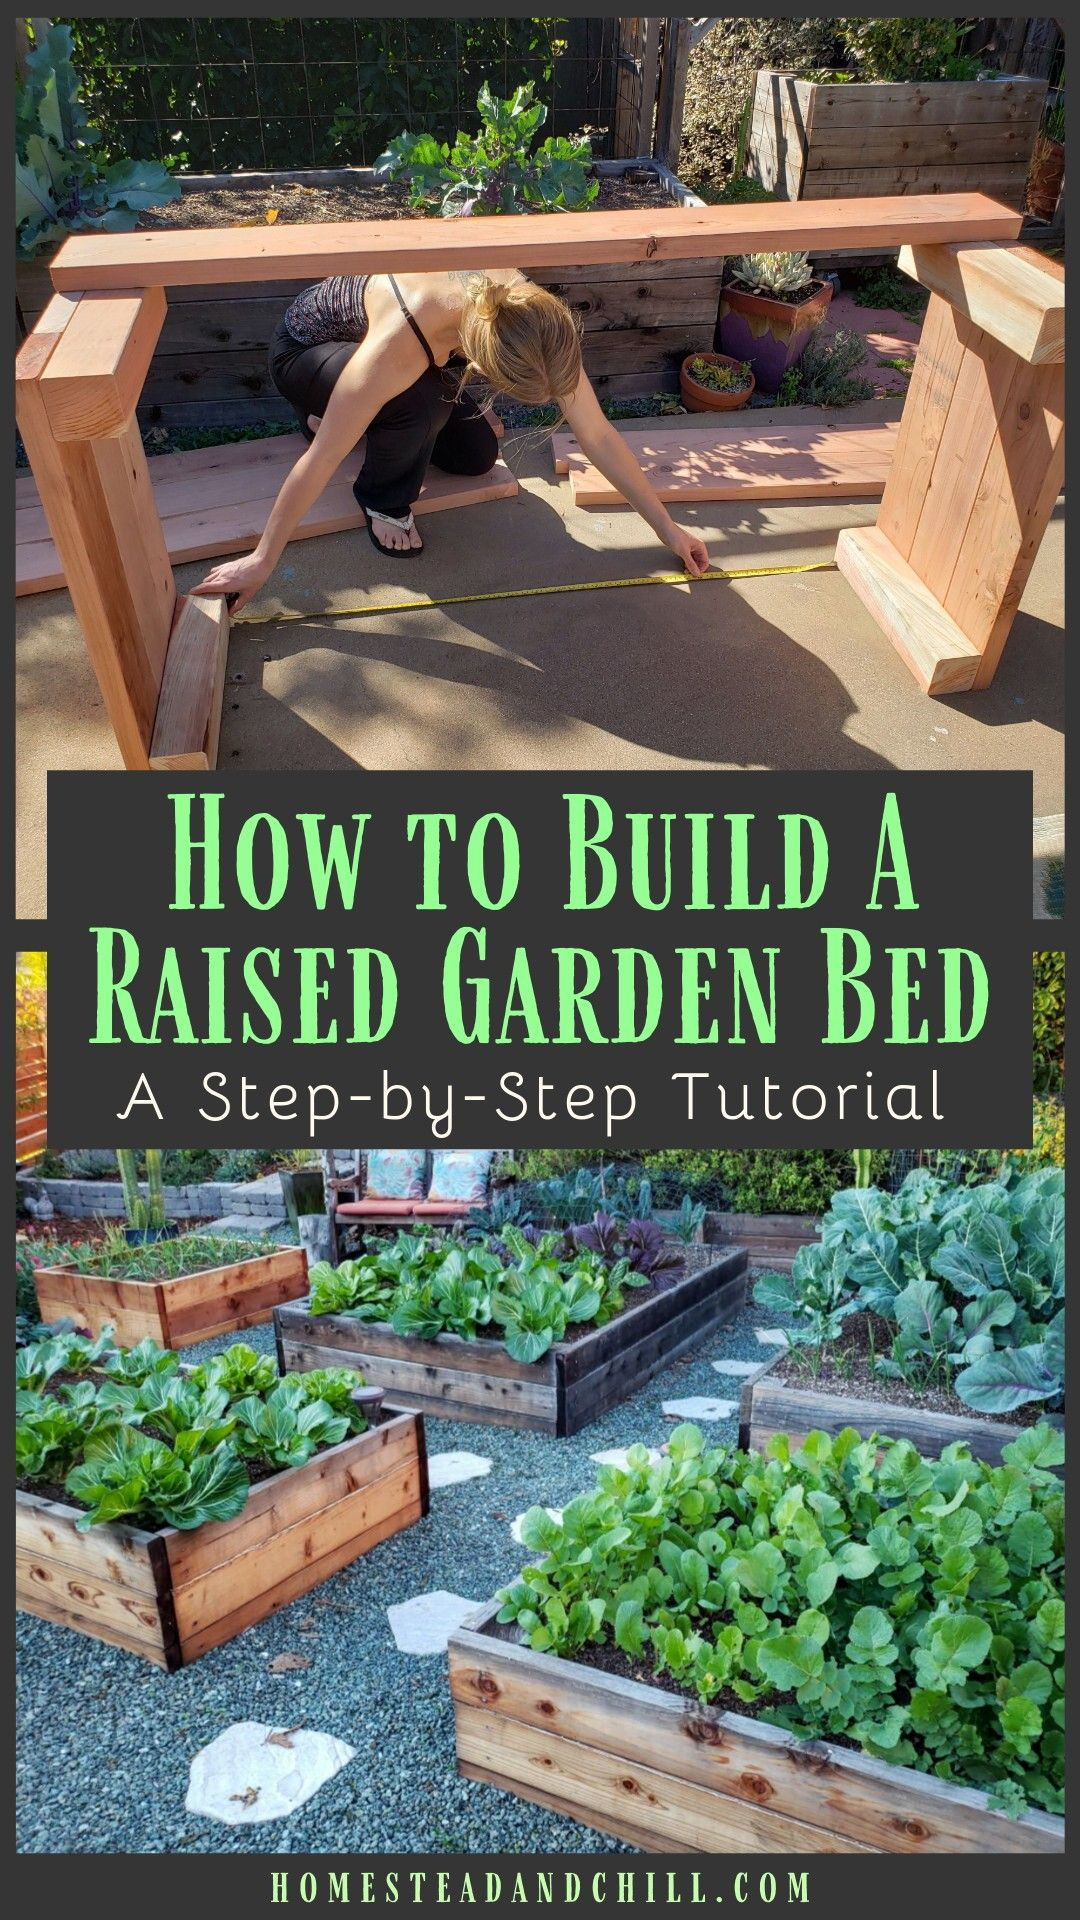 How to Design & Build a Raised Garden Bed is part of Garden types, Building a raised garden, Raised garden, Beautiful raised garden beds, Raised garden beds, Garden beds - Let's go over everything you need to know to build a durable and beautiful raised garden bed, including location, design, supplies needed, best practices, wood types, and stepbystep instructions